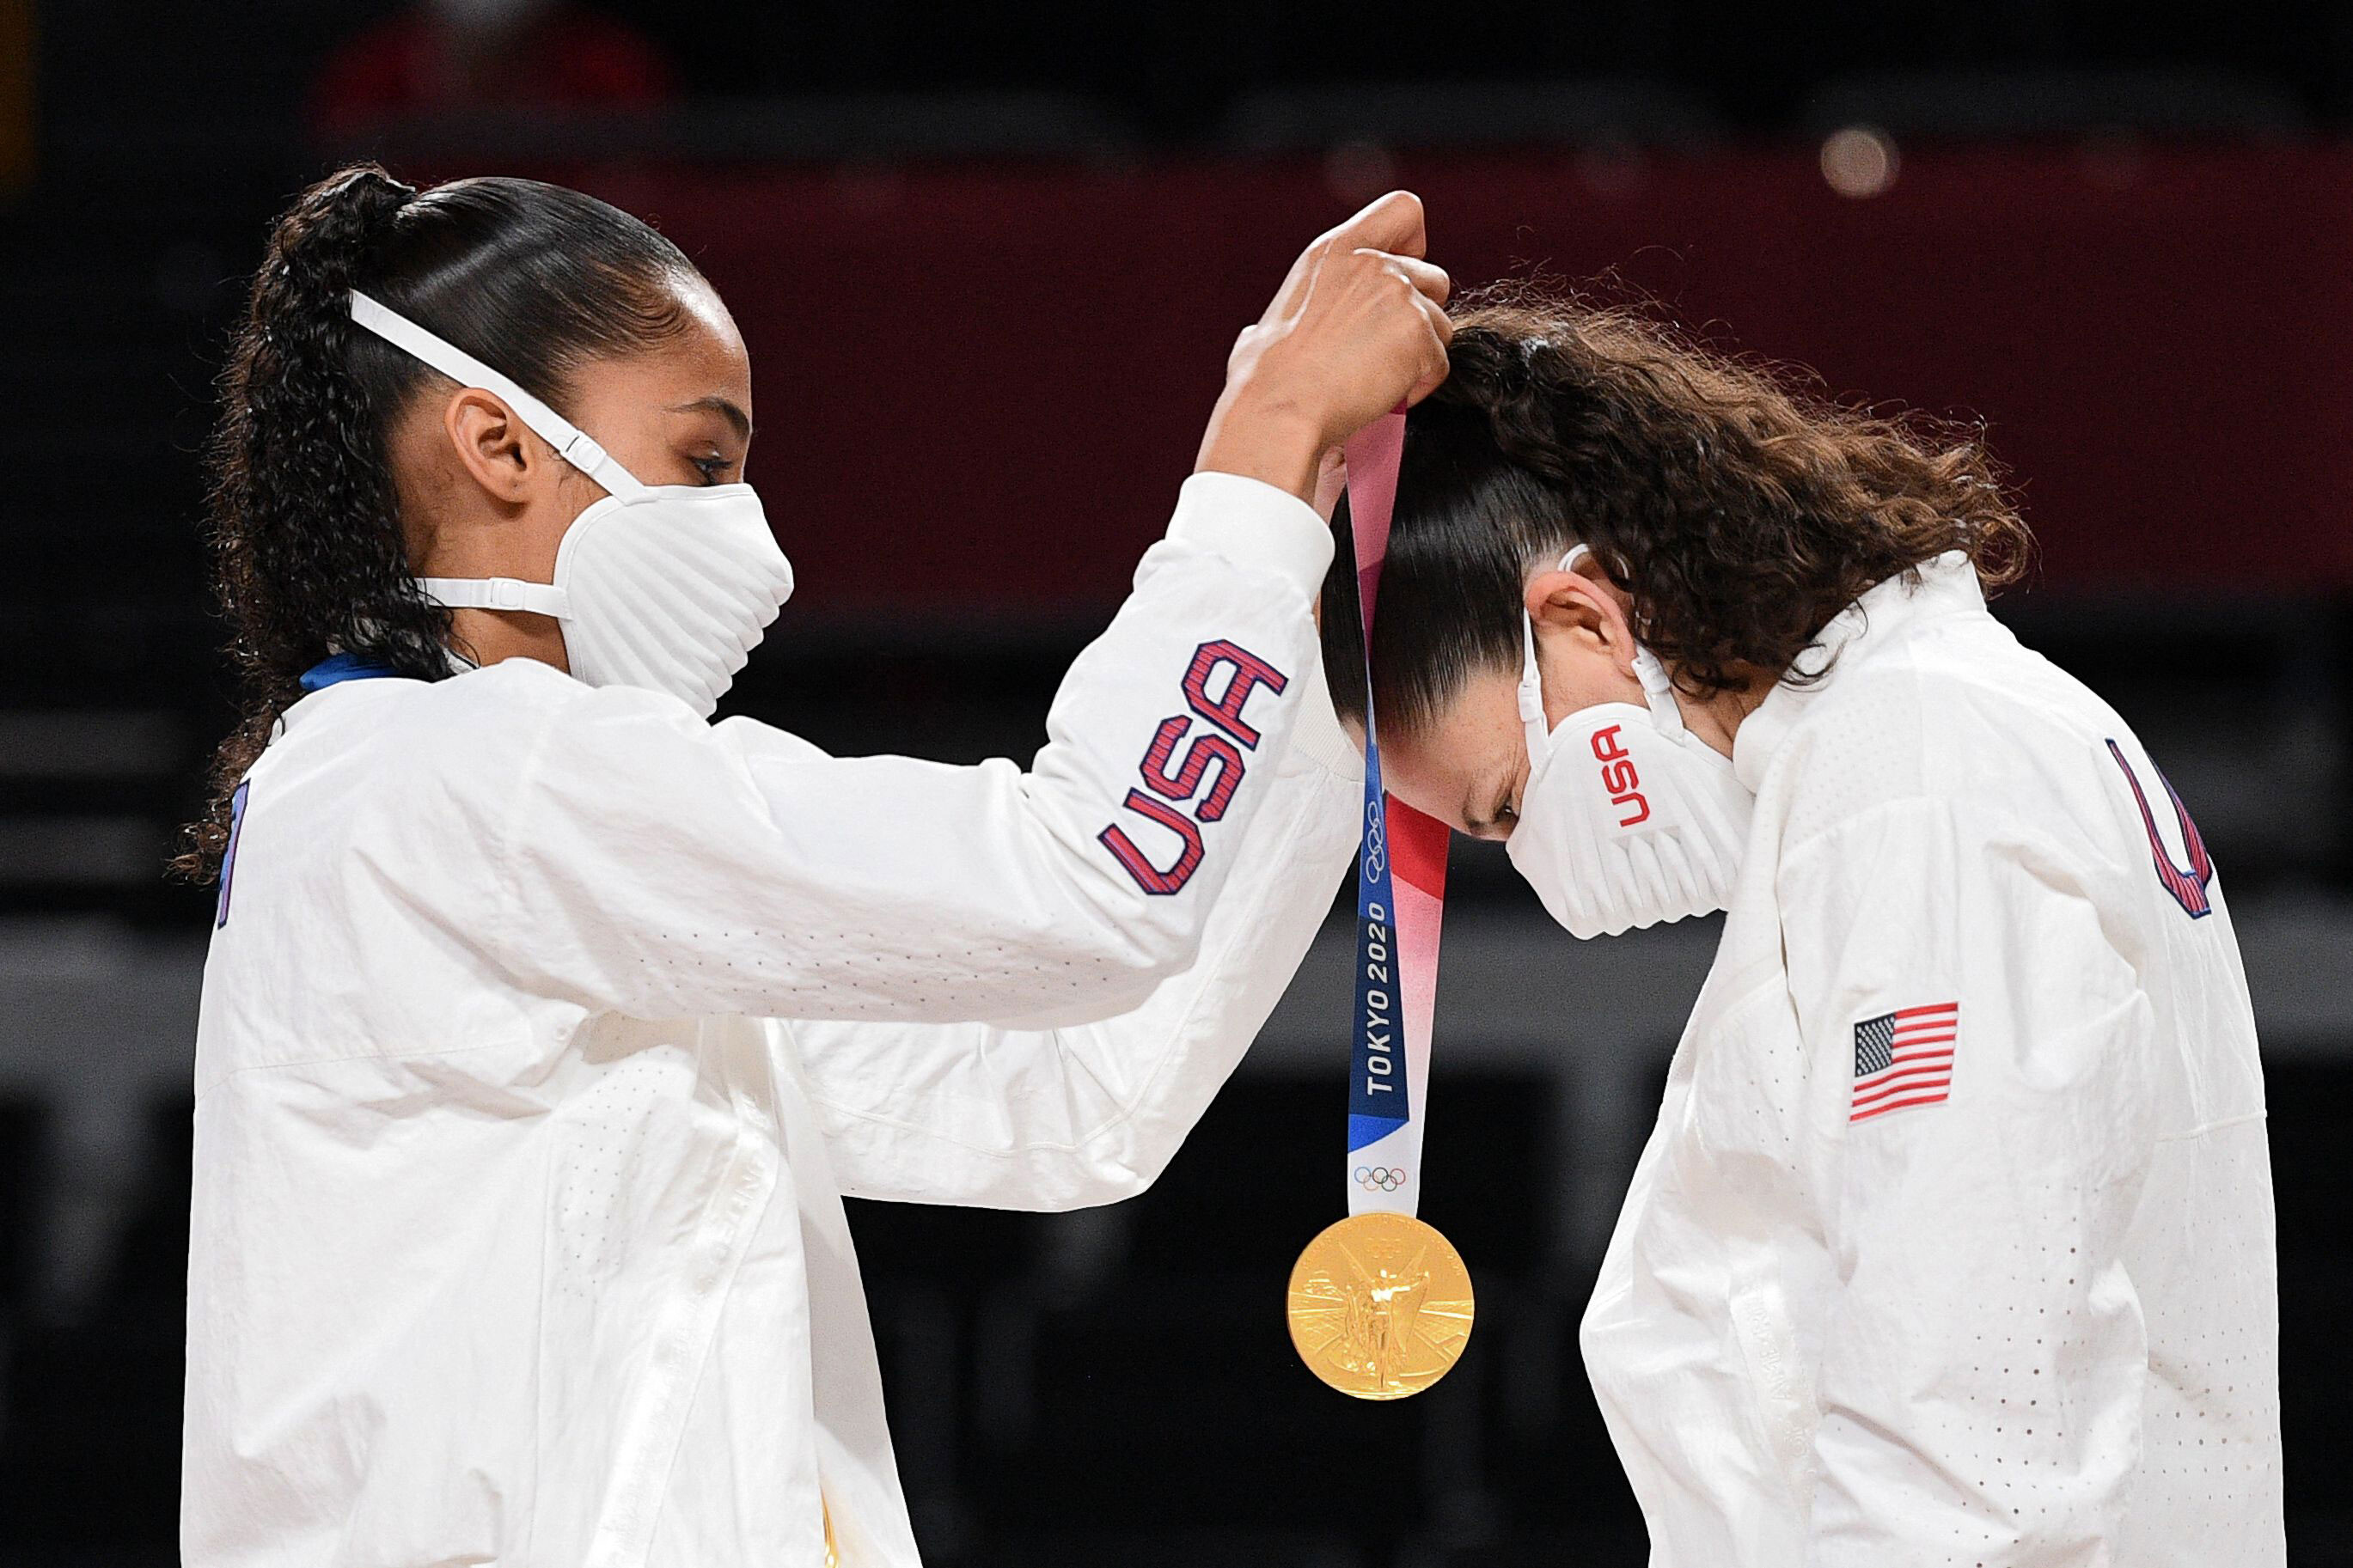 Closing ceremony wraps Tokyo 2020 after Team USA tops medal table